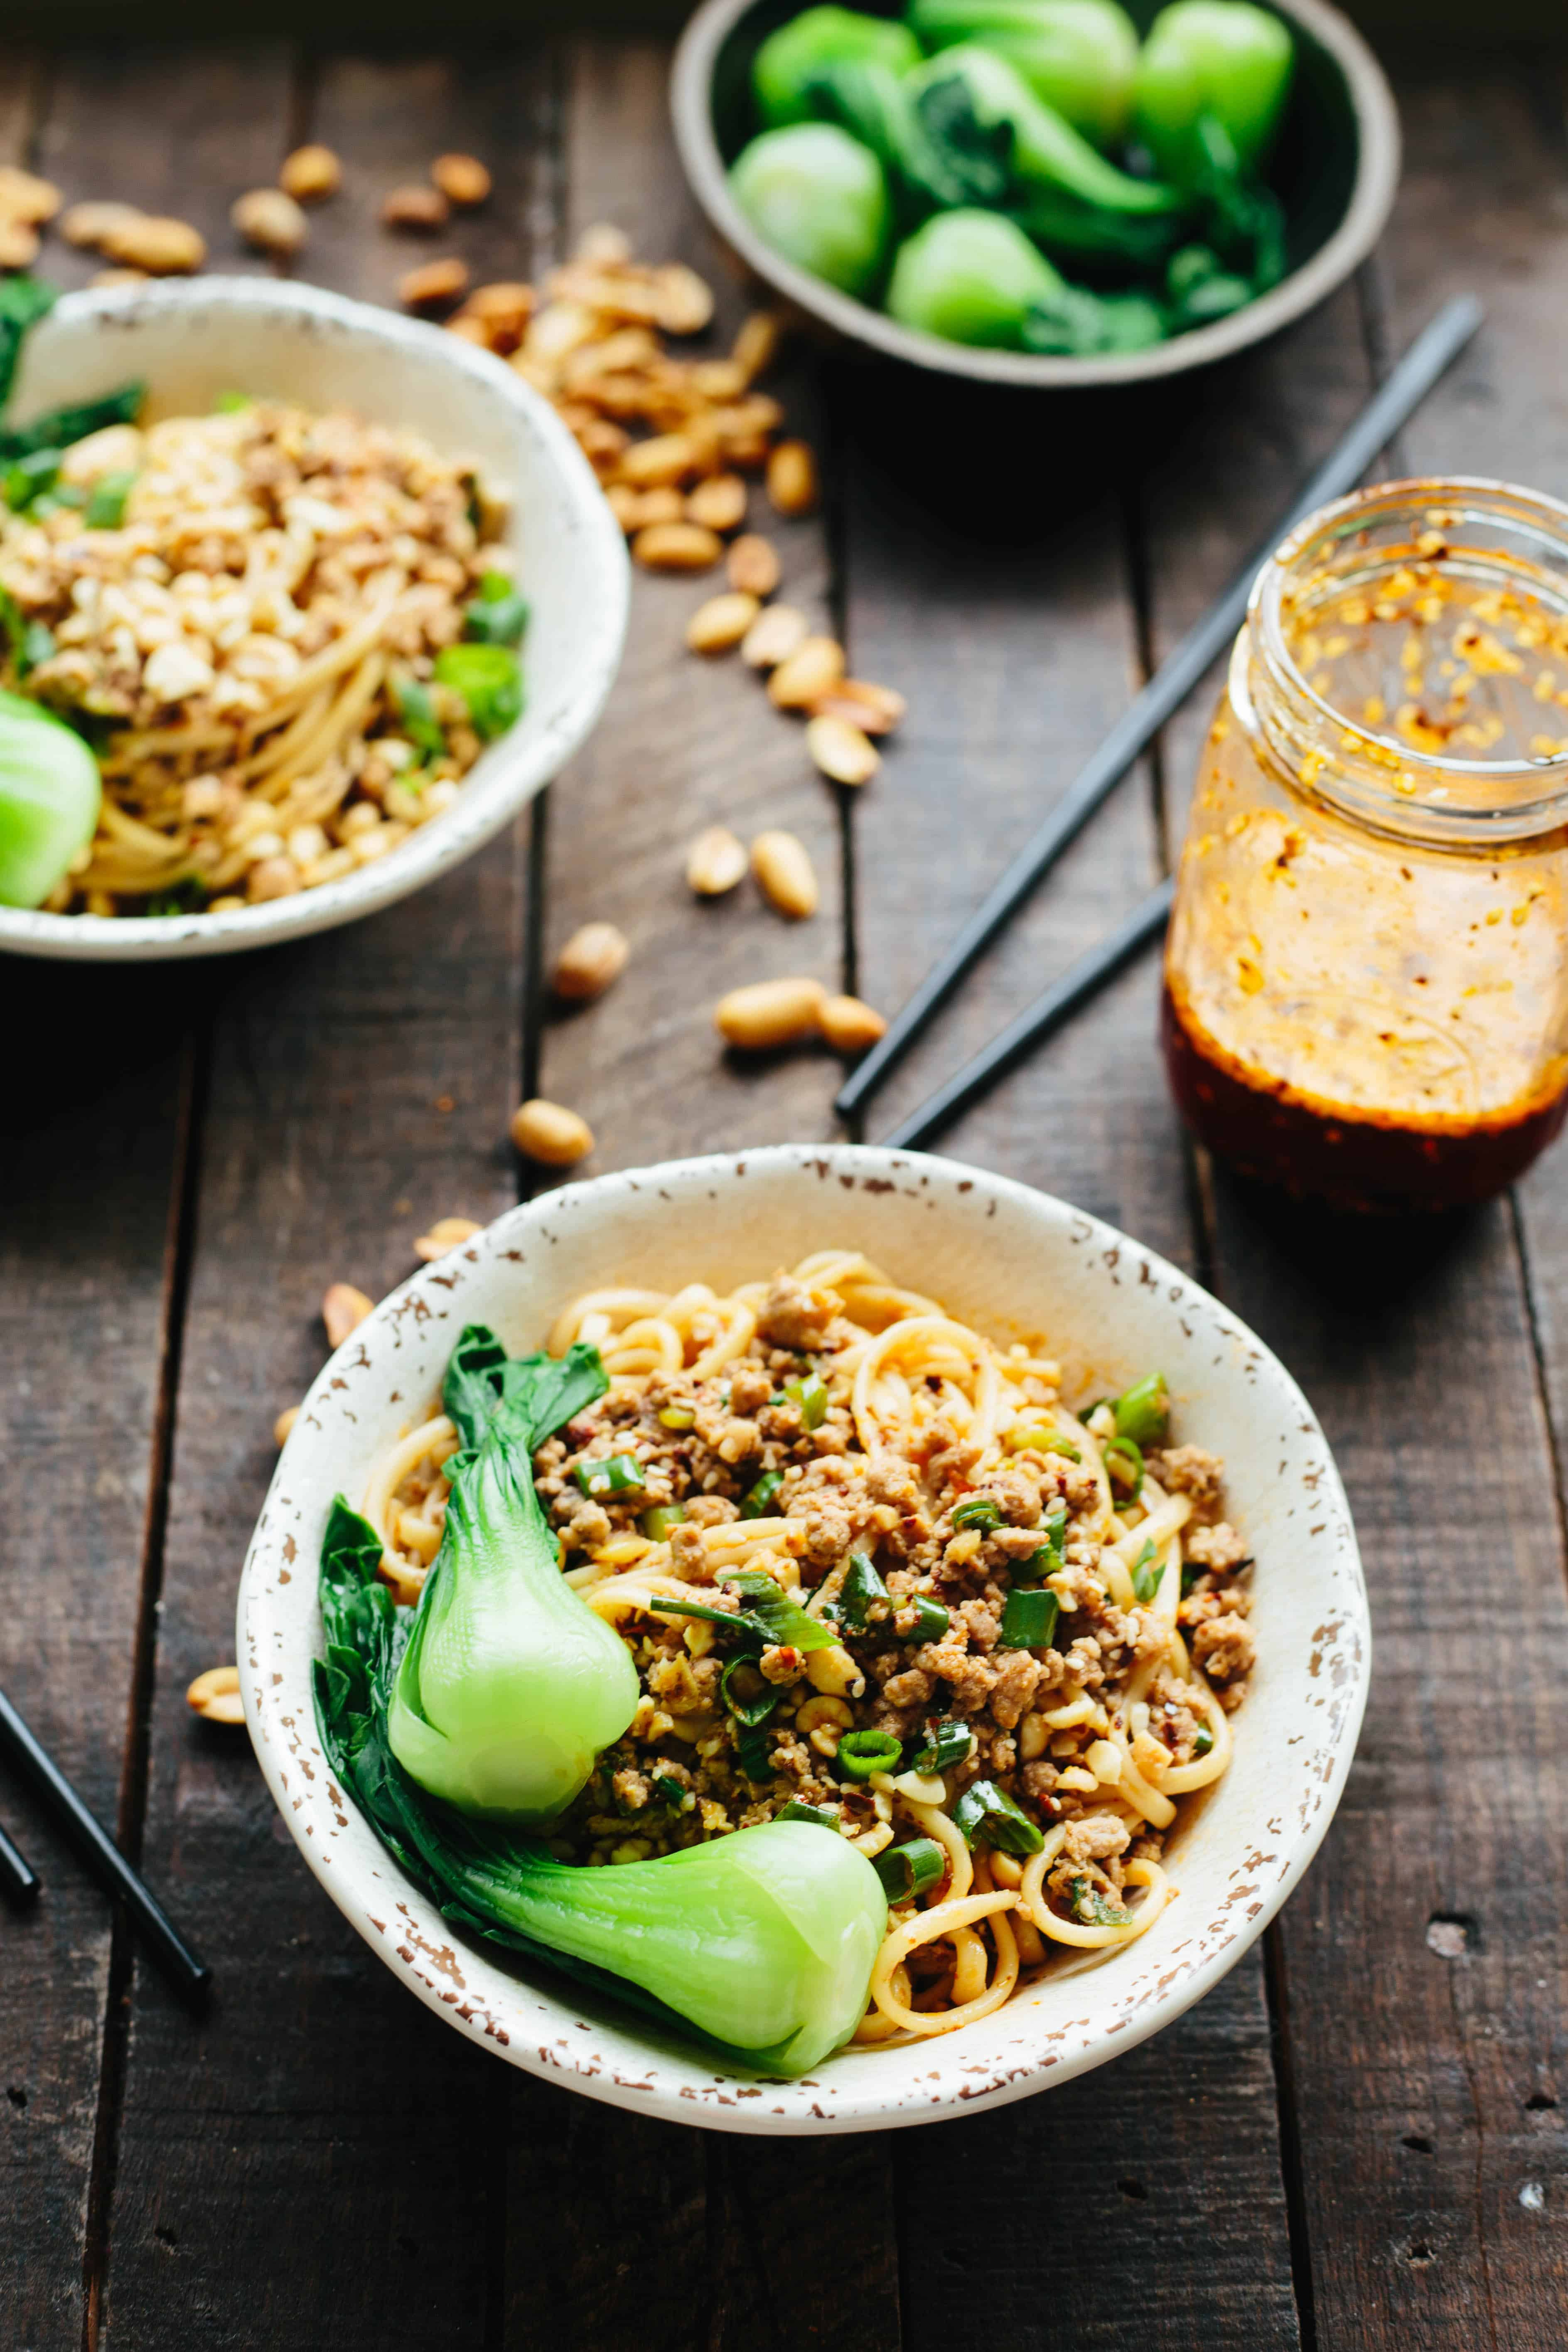 Dan dan noodles coley cooks in my attempt to master dan dan noodles i had to do quite a bit of research i love eating chinese food and while ive dabbled in cooking it before forumfinder Image collections